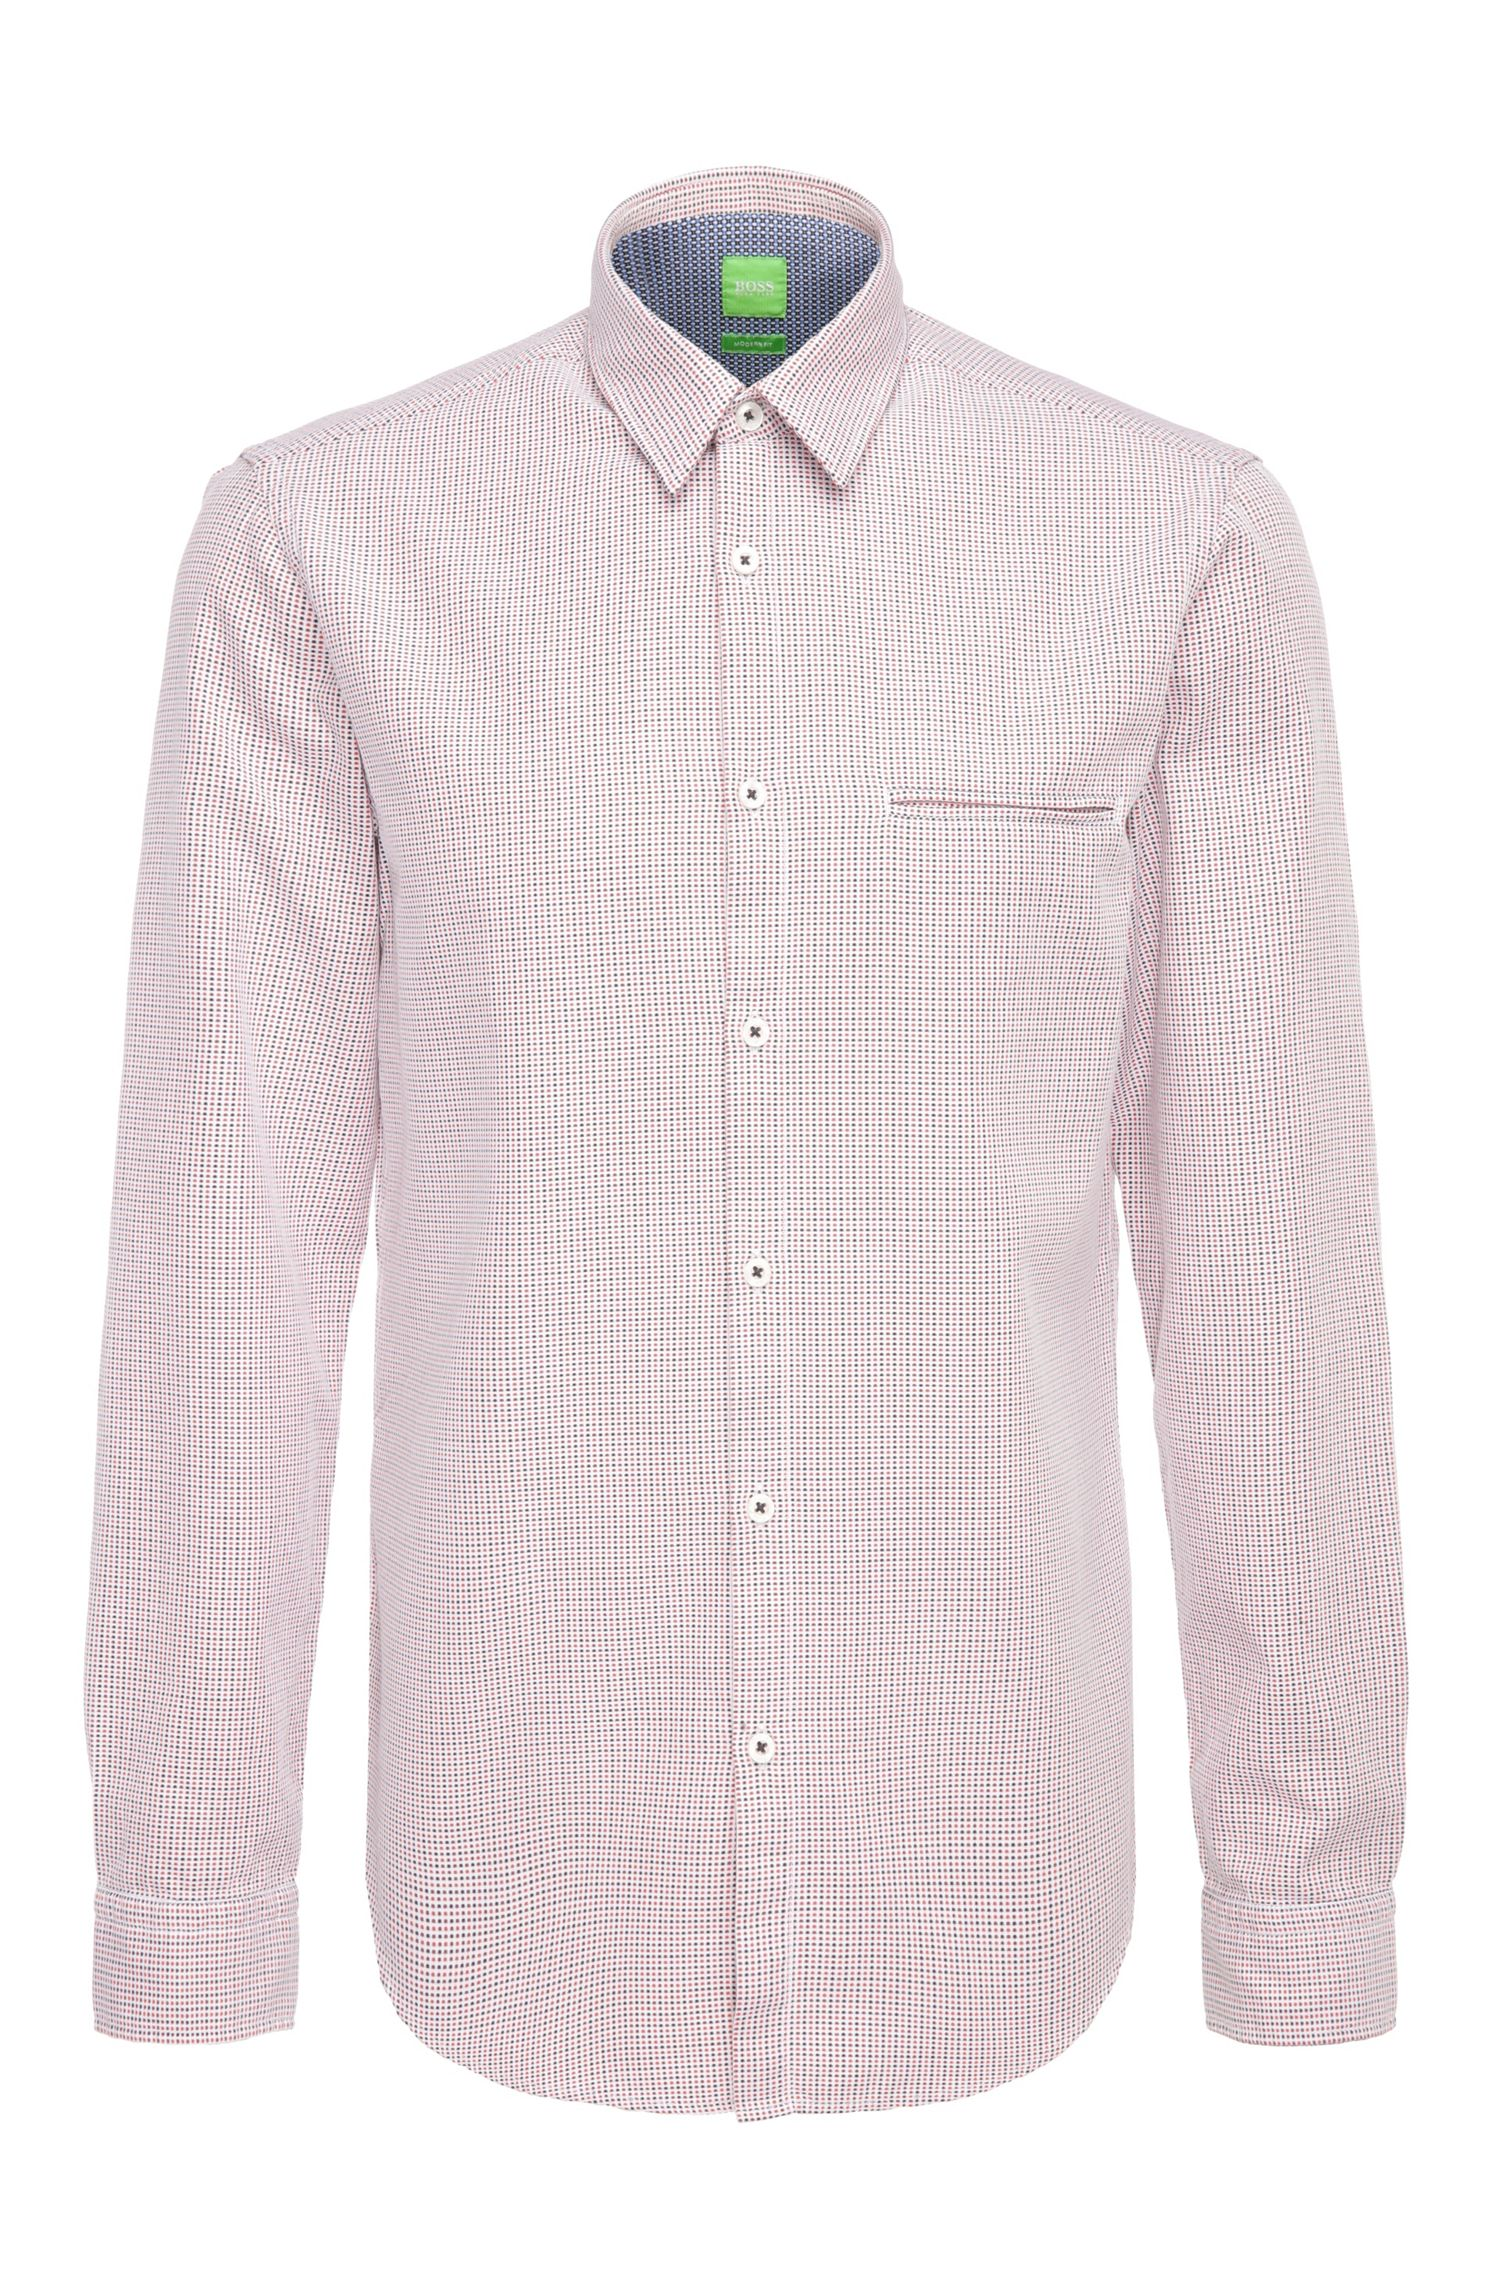 Regular-fit shirt in patterned cotton: 'C-Bacchis'